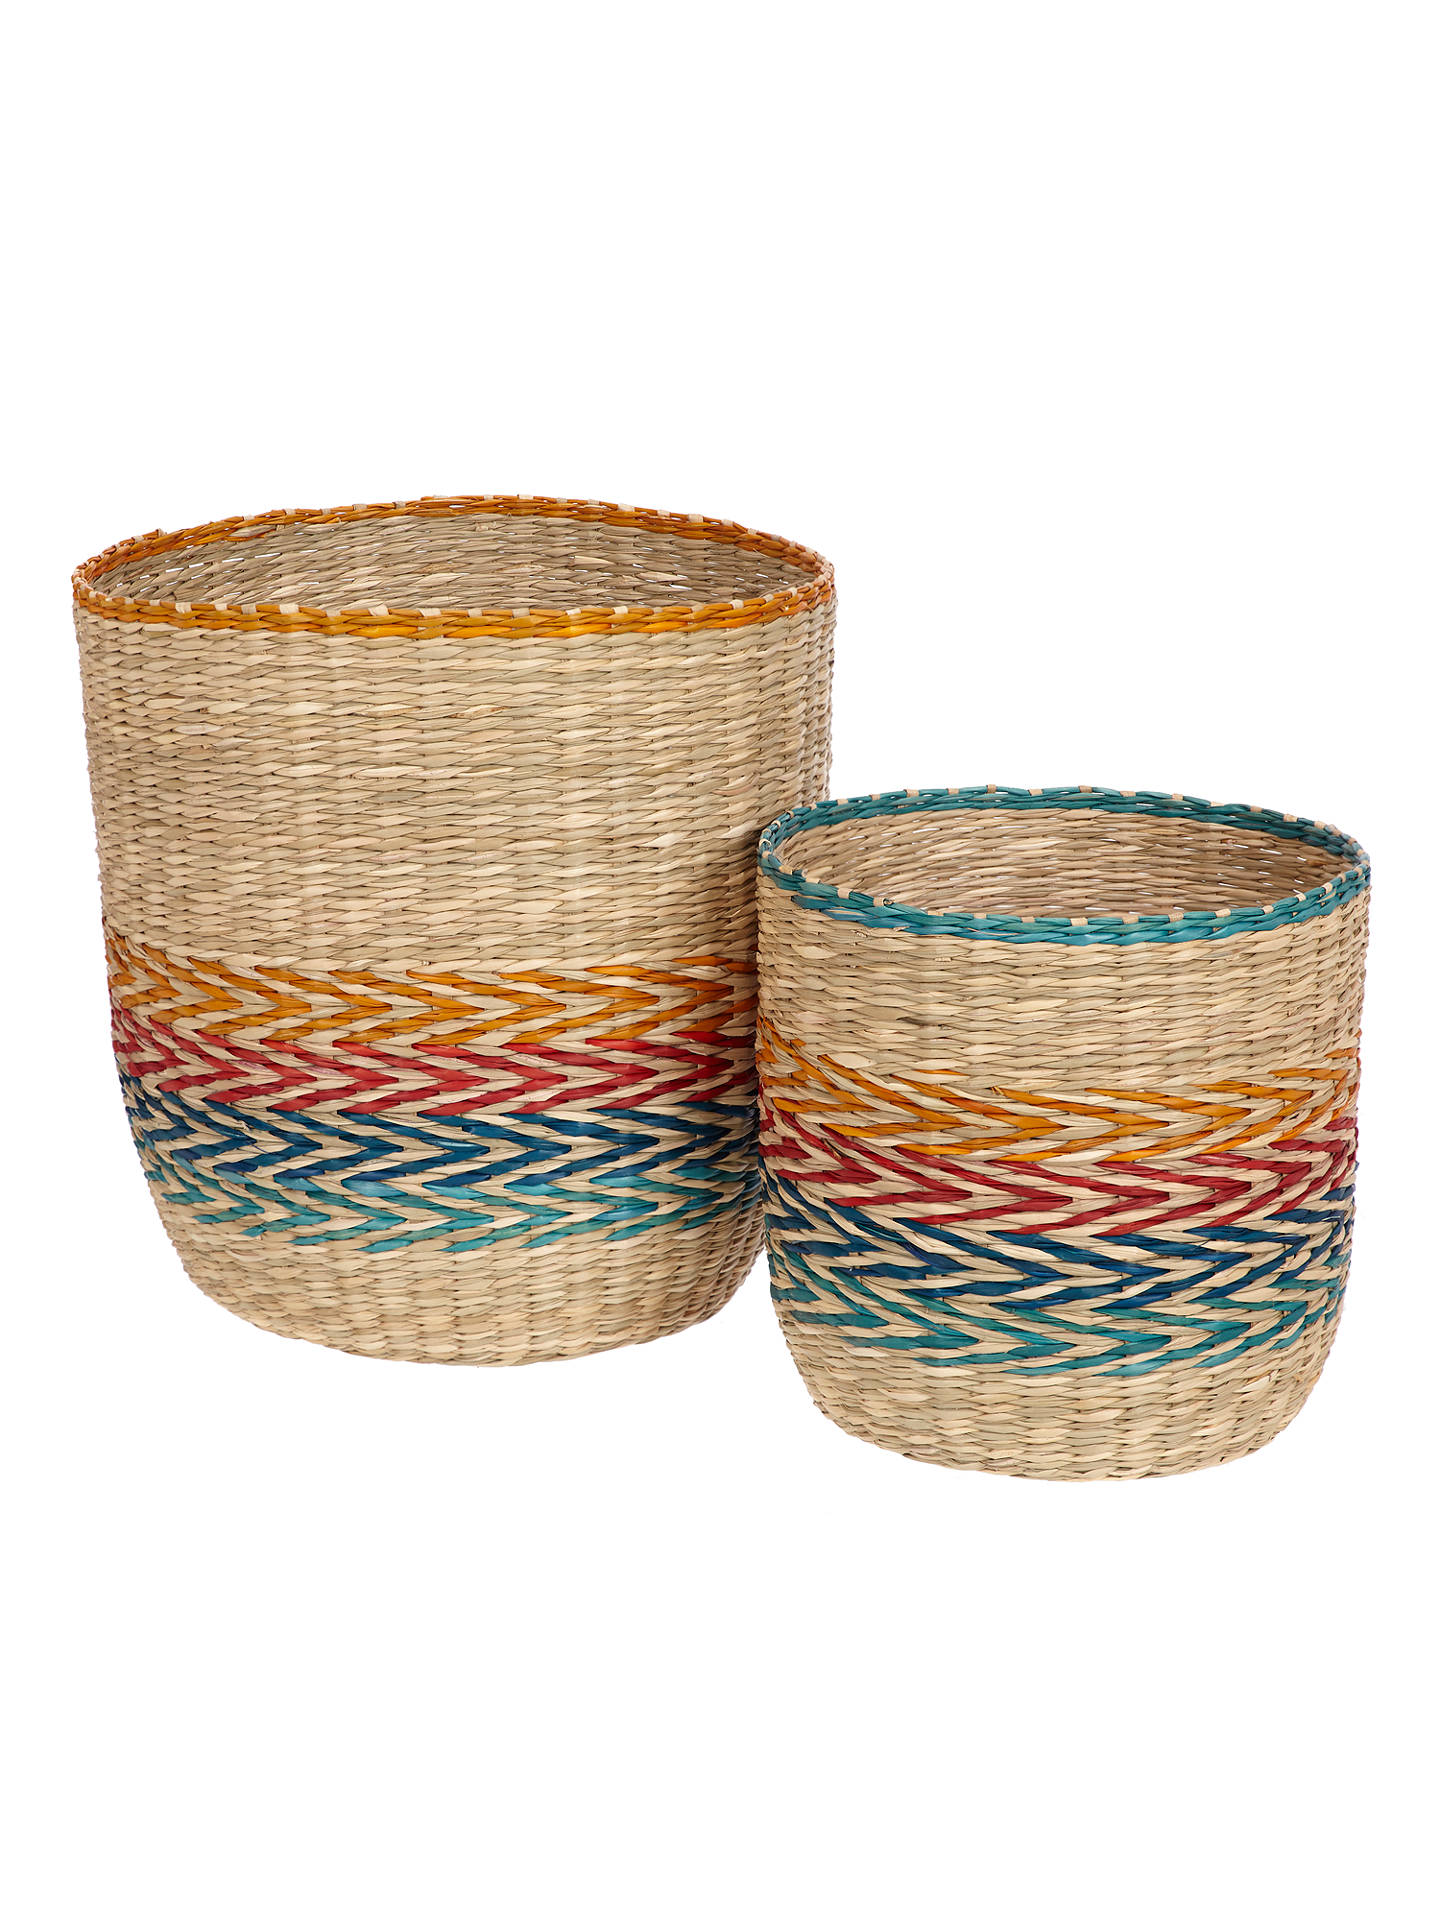 BuyJohn Lewis & Partners Fusion Patterned Basket, Set of 2 Online at johnlewis.com